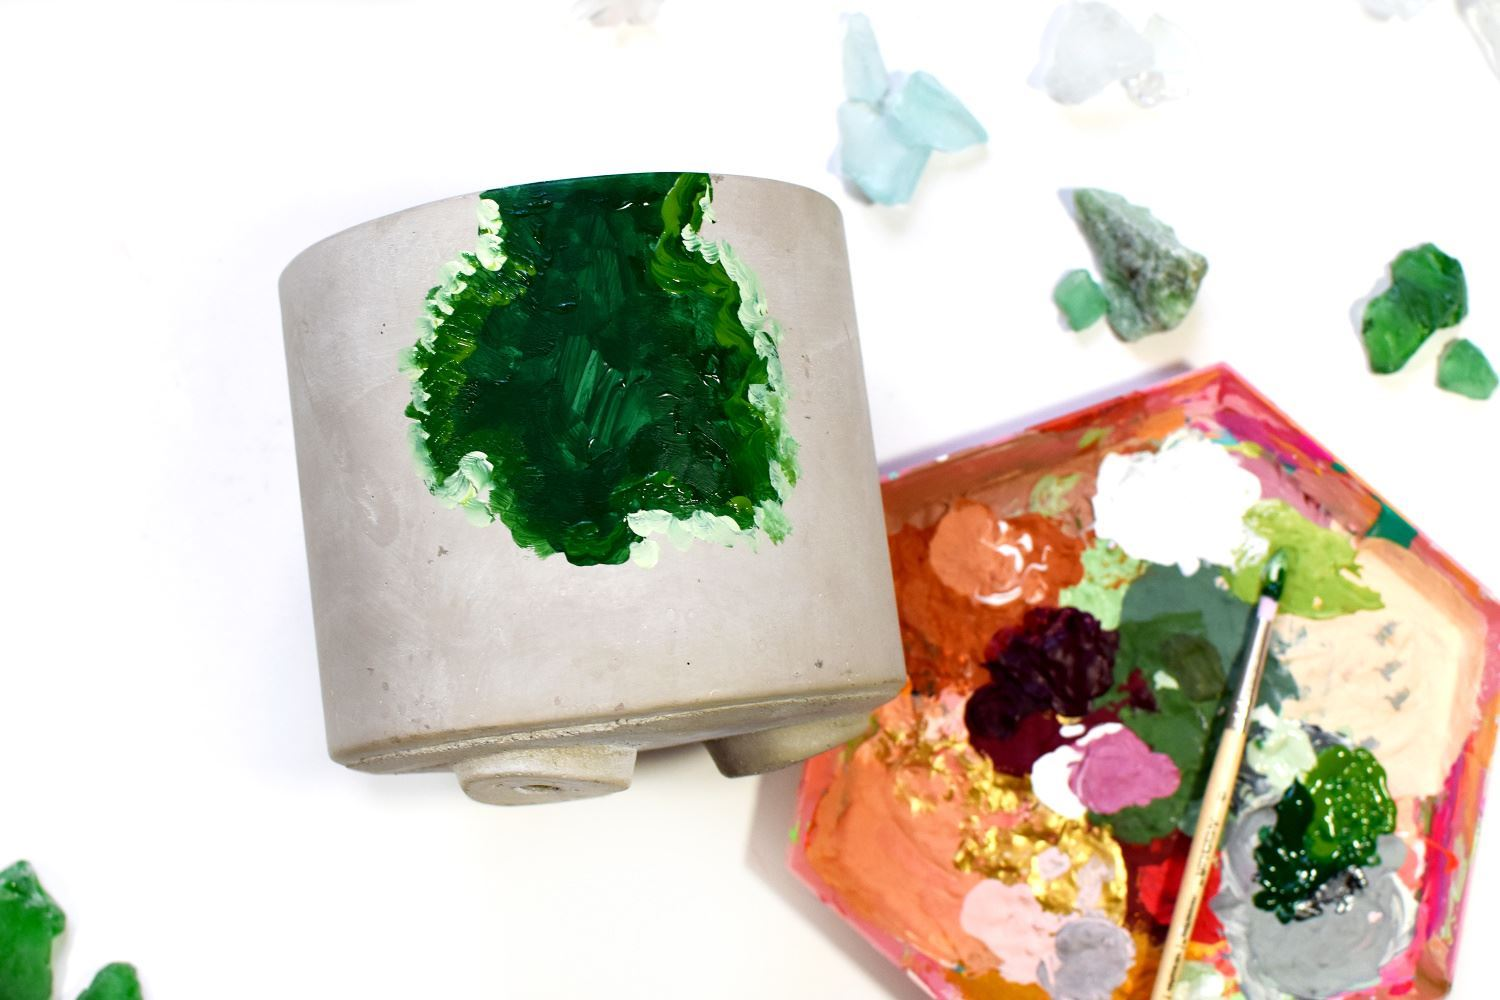 Paint shape with loose strokes of green paint